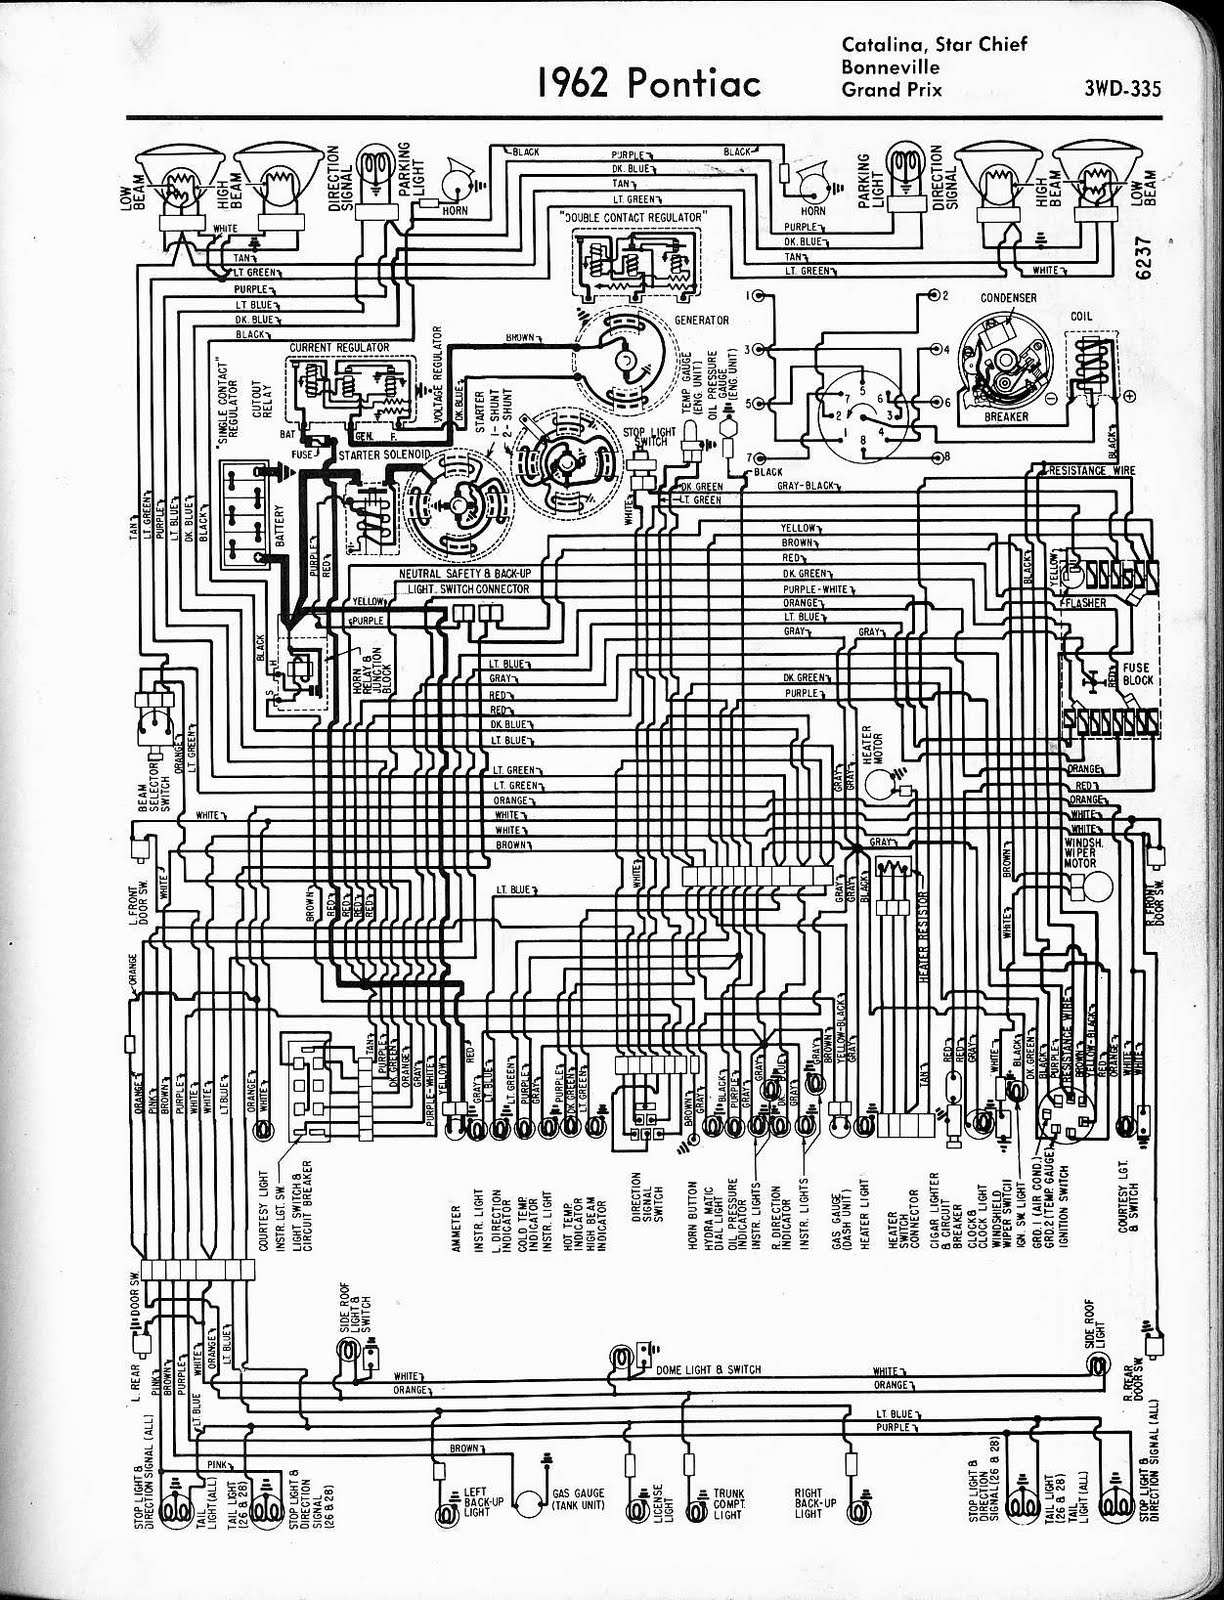 2005 Pontiac Montana Wiring Diagram Pcm | Schematic Diagram on grand am wiring diagram, monte carlo ss wiring diagram, uplander wiring diagram, century wiring diagram, 300m wiring diagram, new beetle wiring diagram, impala wiring diagram, f250 super duty wiring diagram, lumina wiring diagram, allante wiring diagram, grand prix wiring diagram, impreza wiring diagram, galant wiring diagram, blazer wiring diagram,